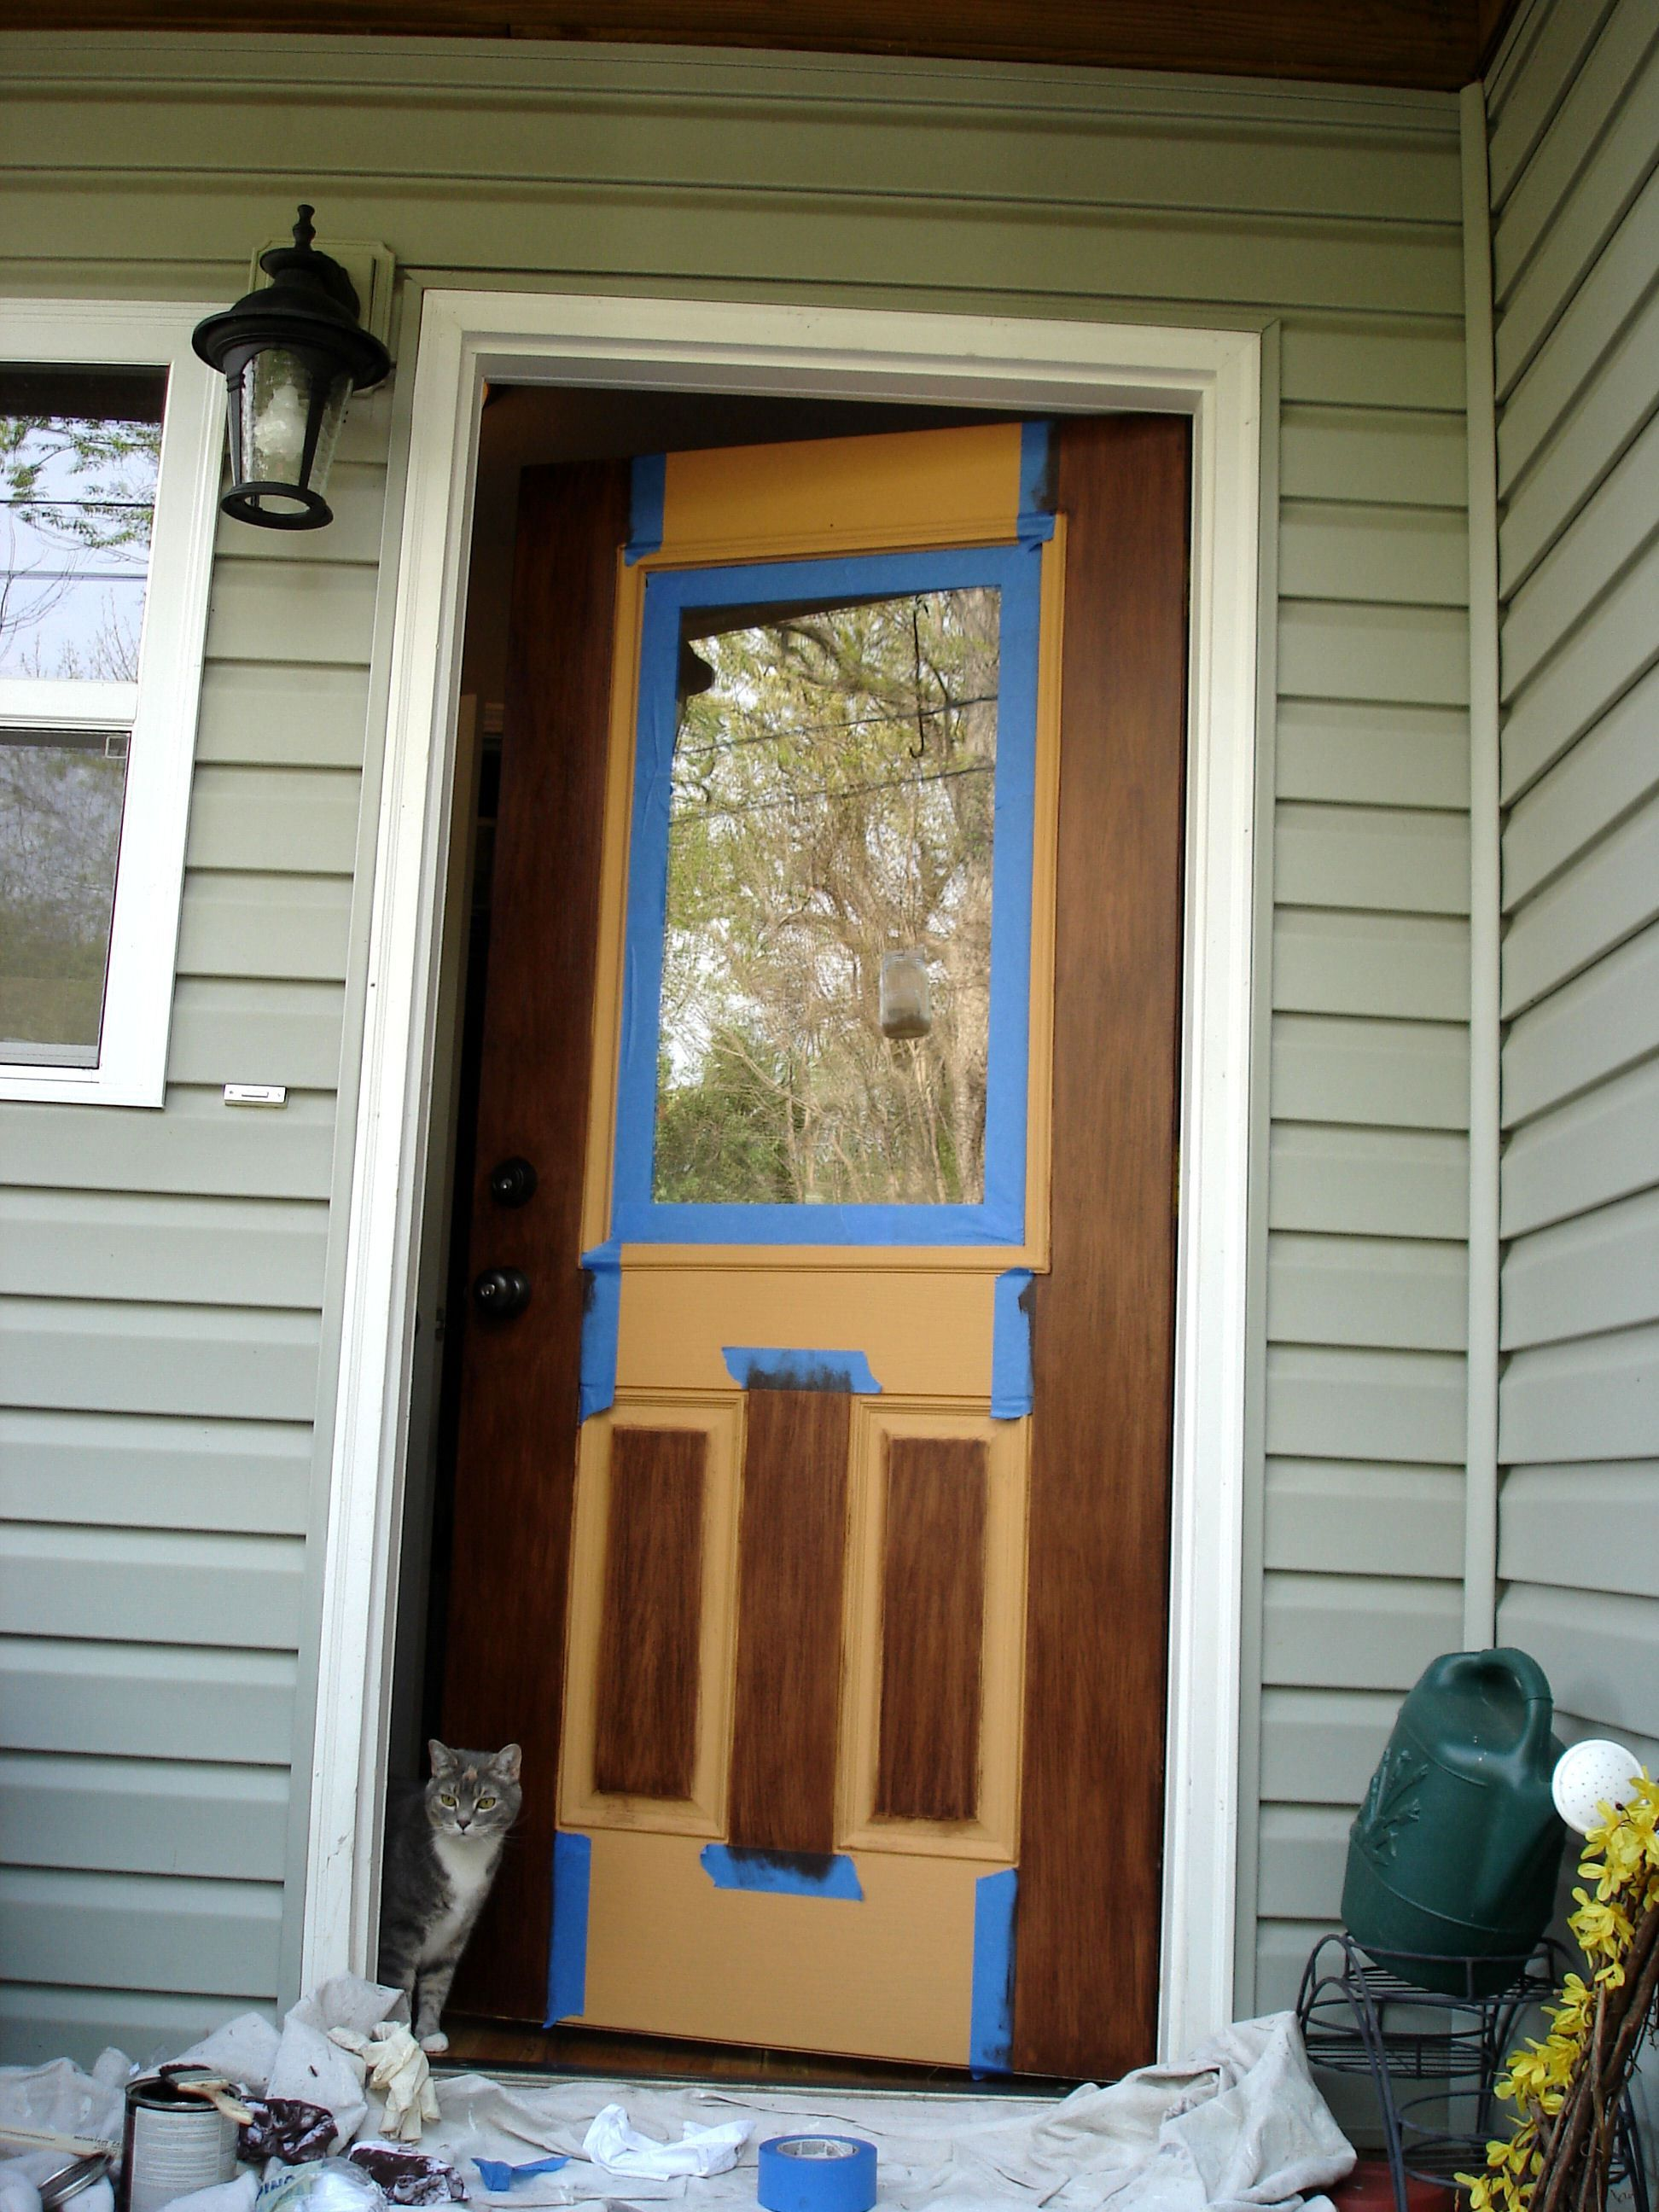 Or How To Gel Stain An Embossed Fibergl Door Remember When I Posted About My Hopes For A Front Entrance Makeover Couldn T Be More Pleased With The